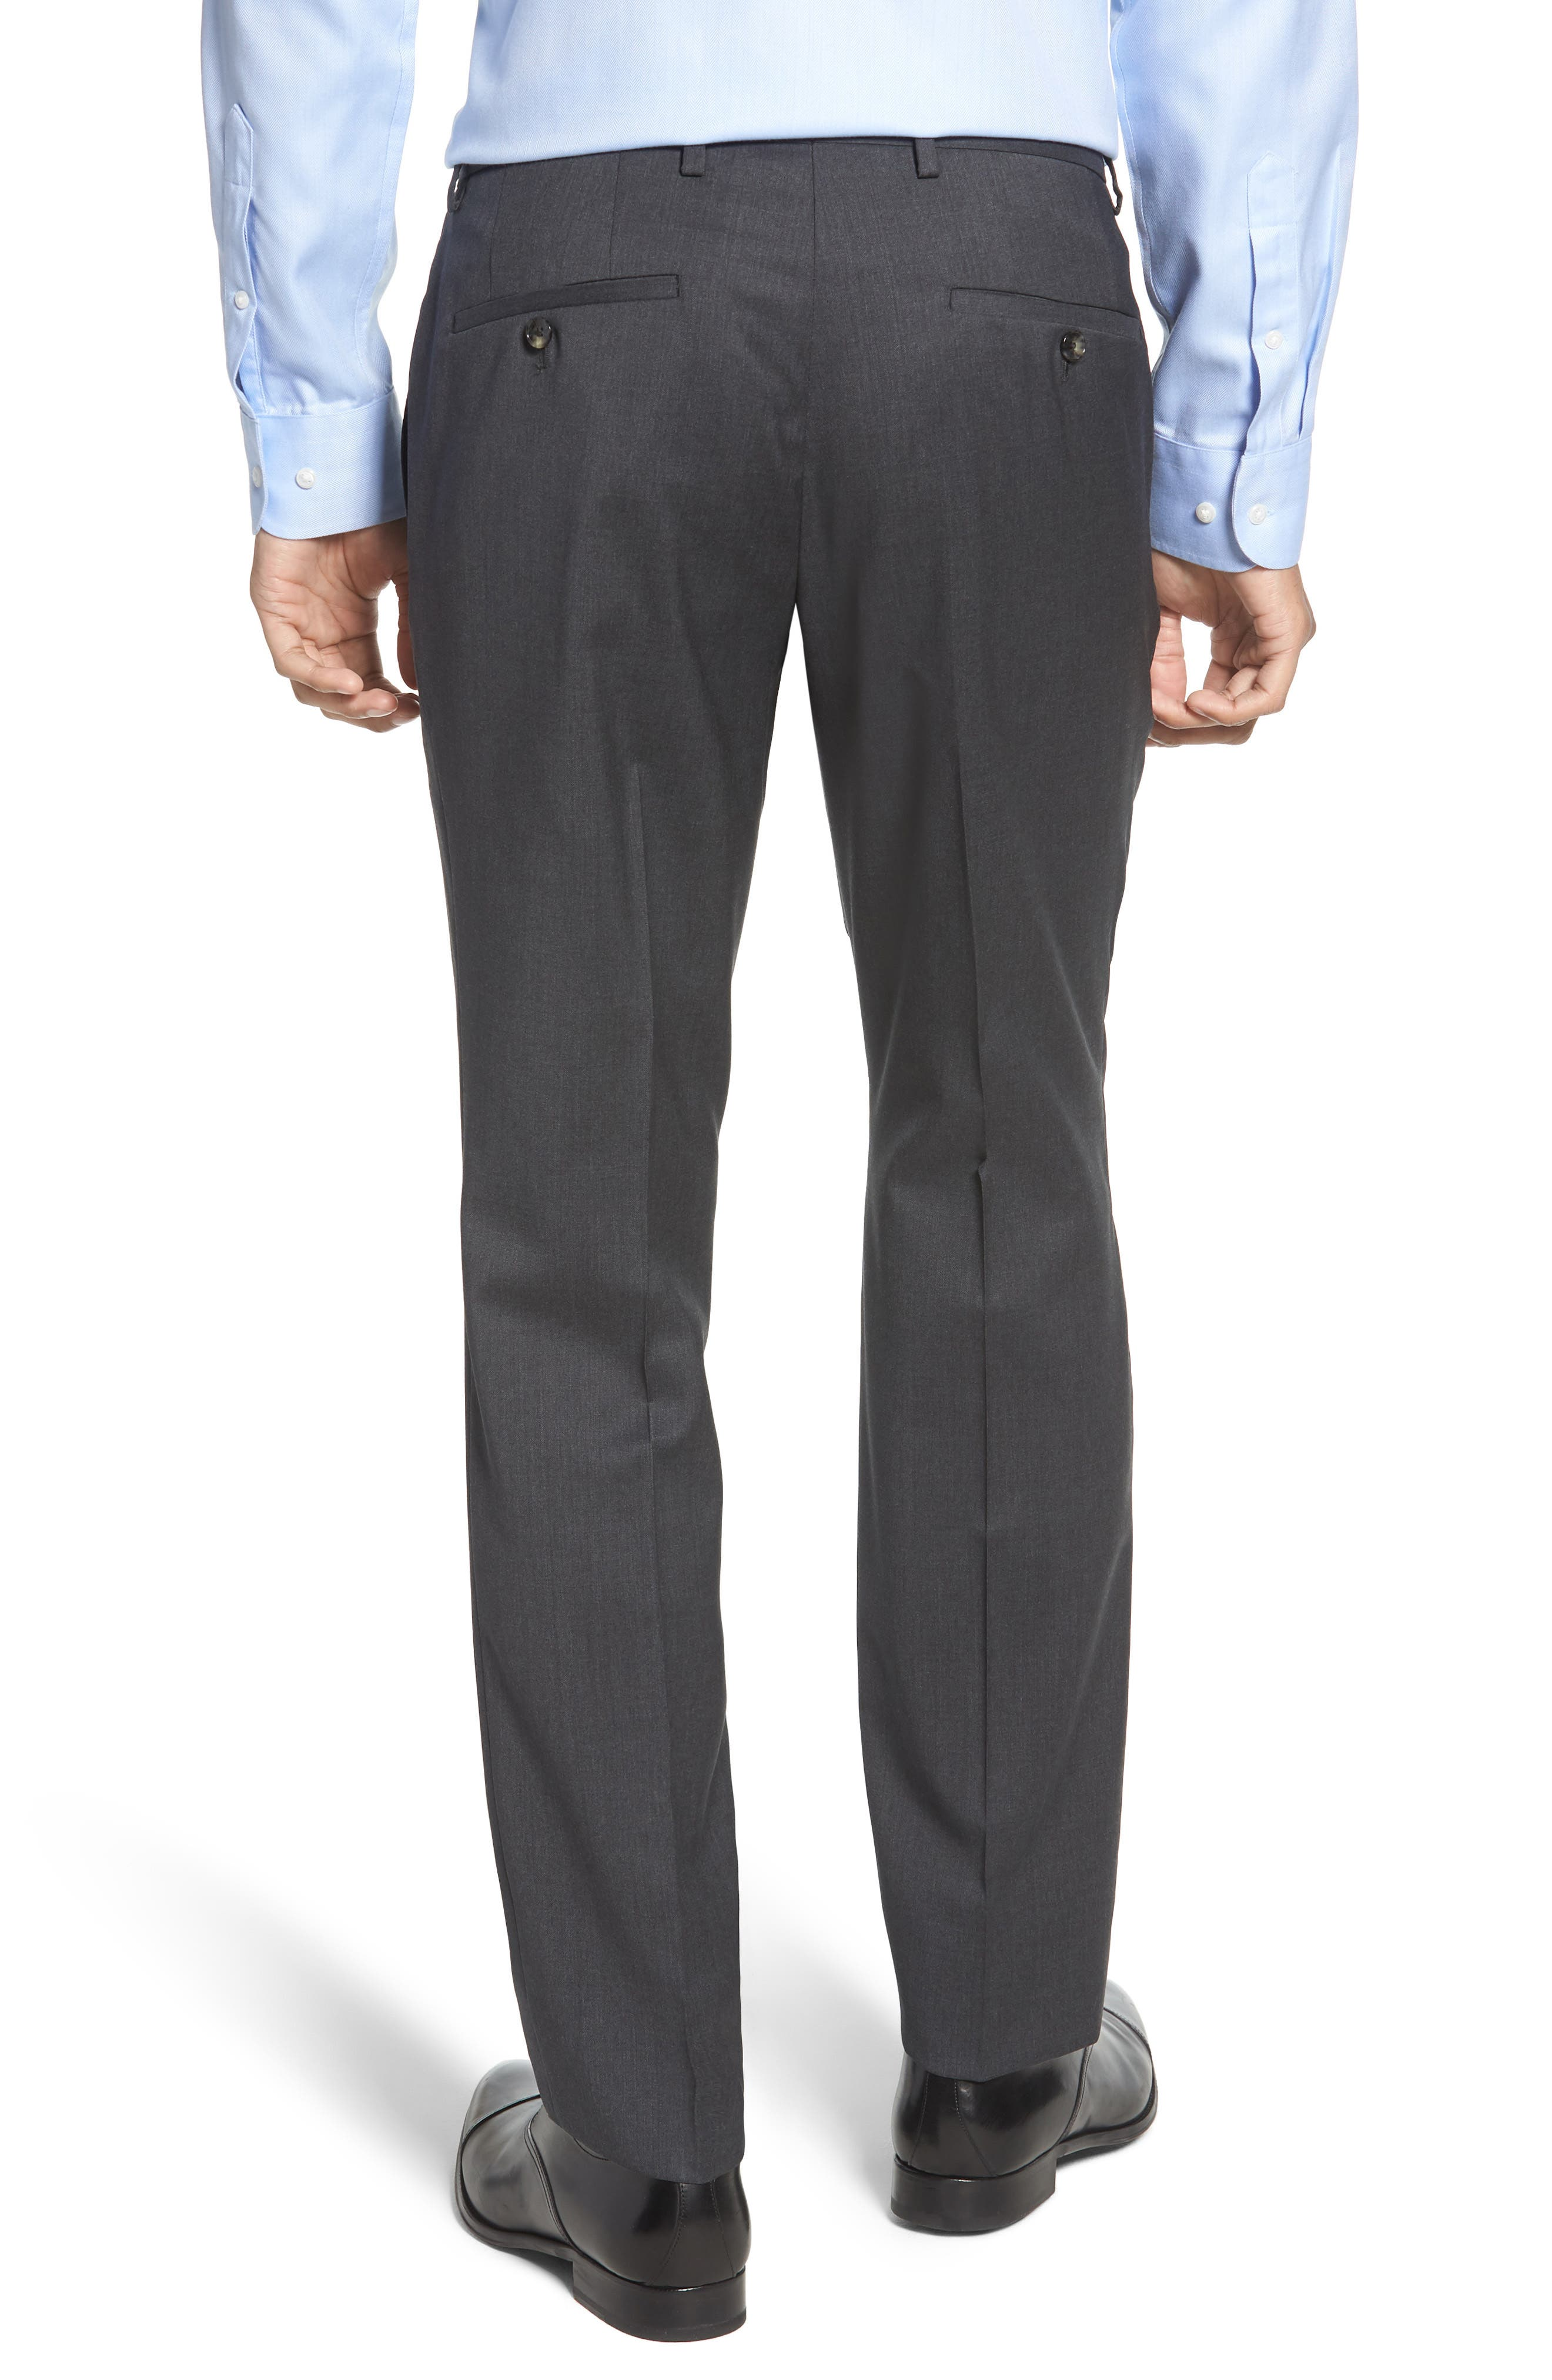 Leenon Flat Front Regular Fit Solid Wool Trousers,                             Alternate thumbnail 2, color,                             CHARCOAL